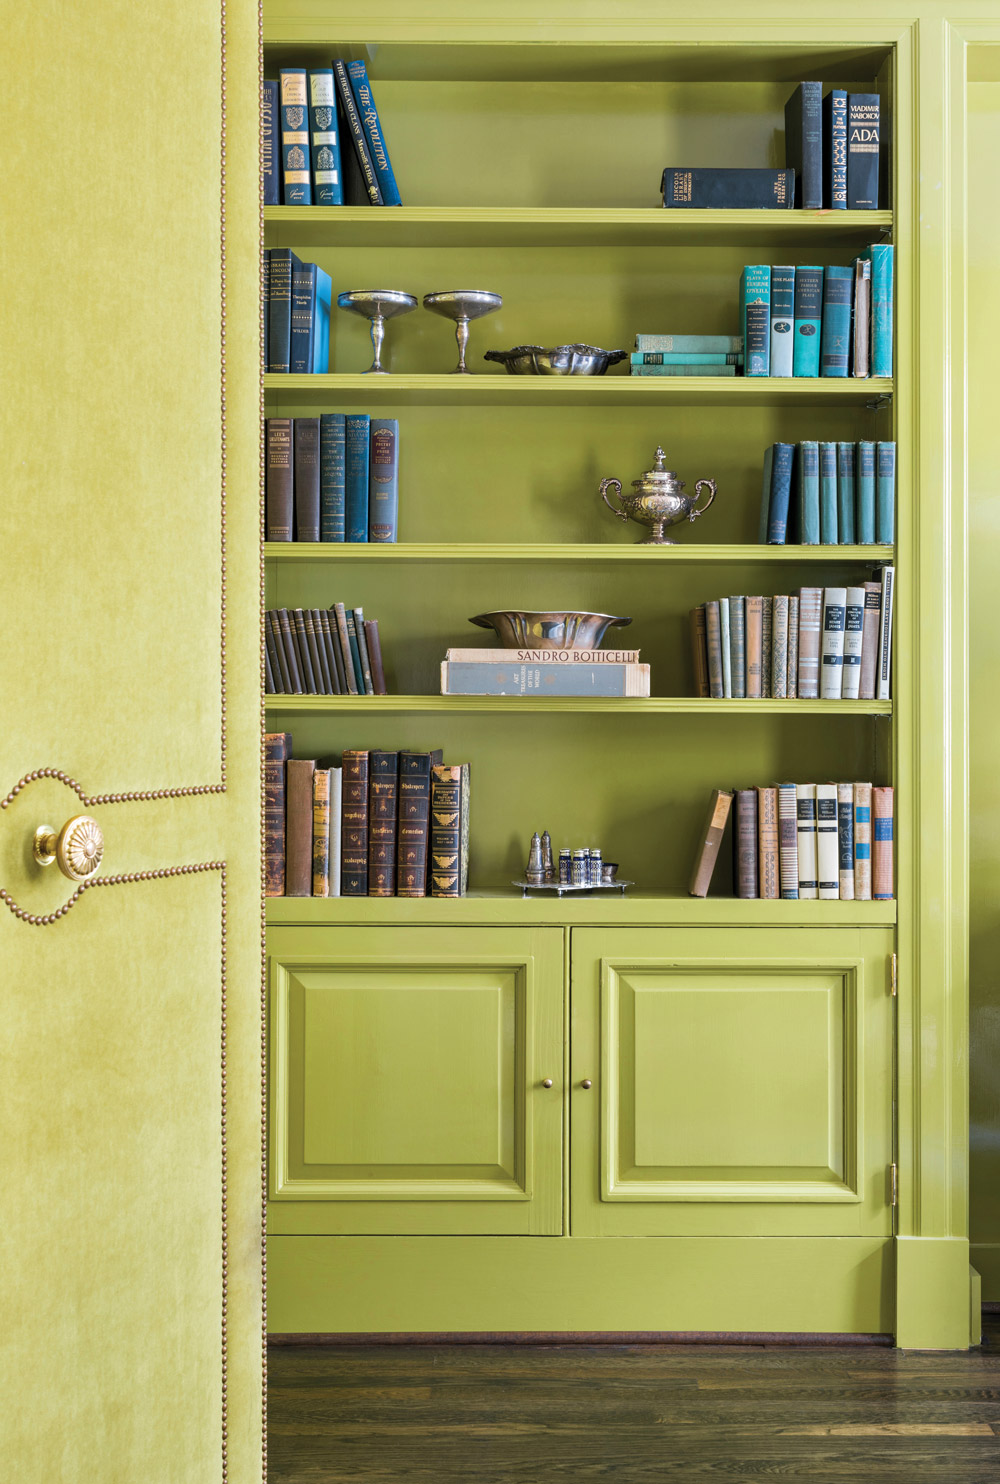 A lime green door upholstered in velvet